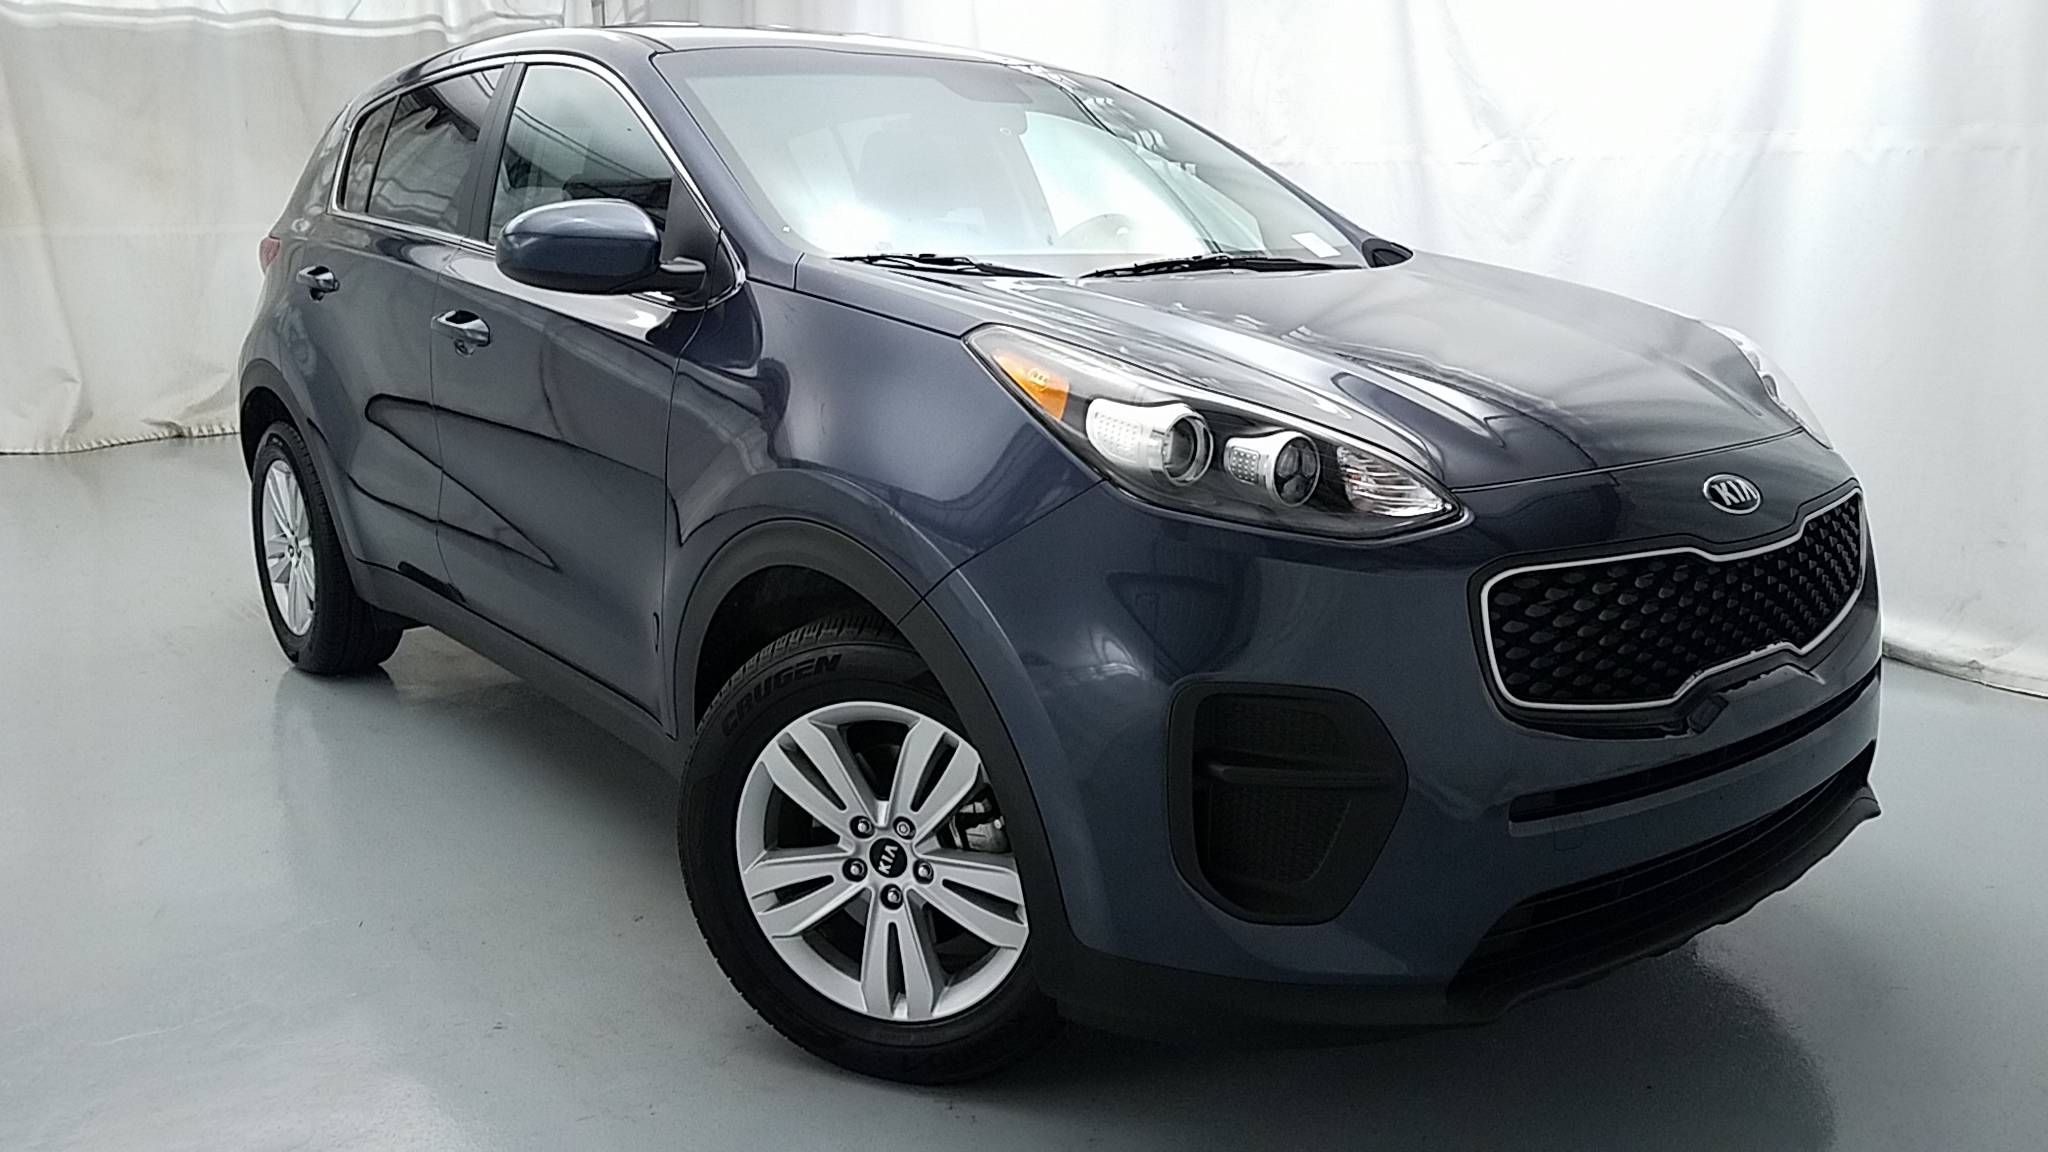 2017 Kia Sportage Vehicle Photo In Hammond, LA 70403